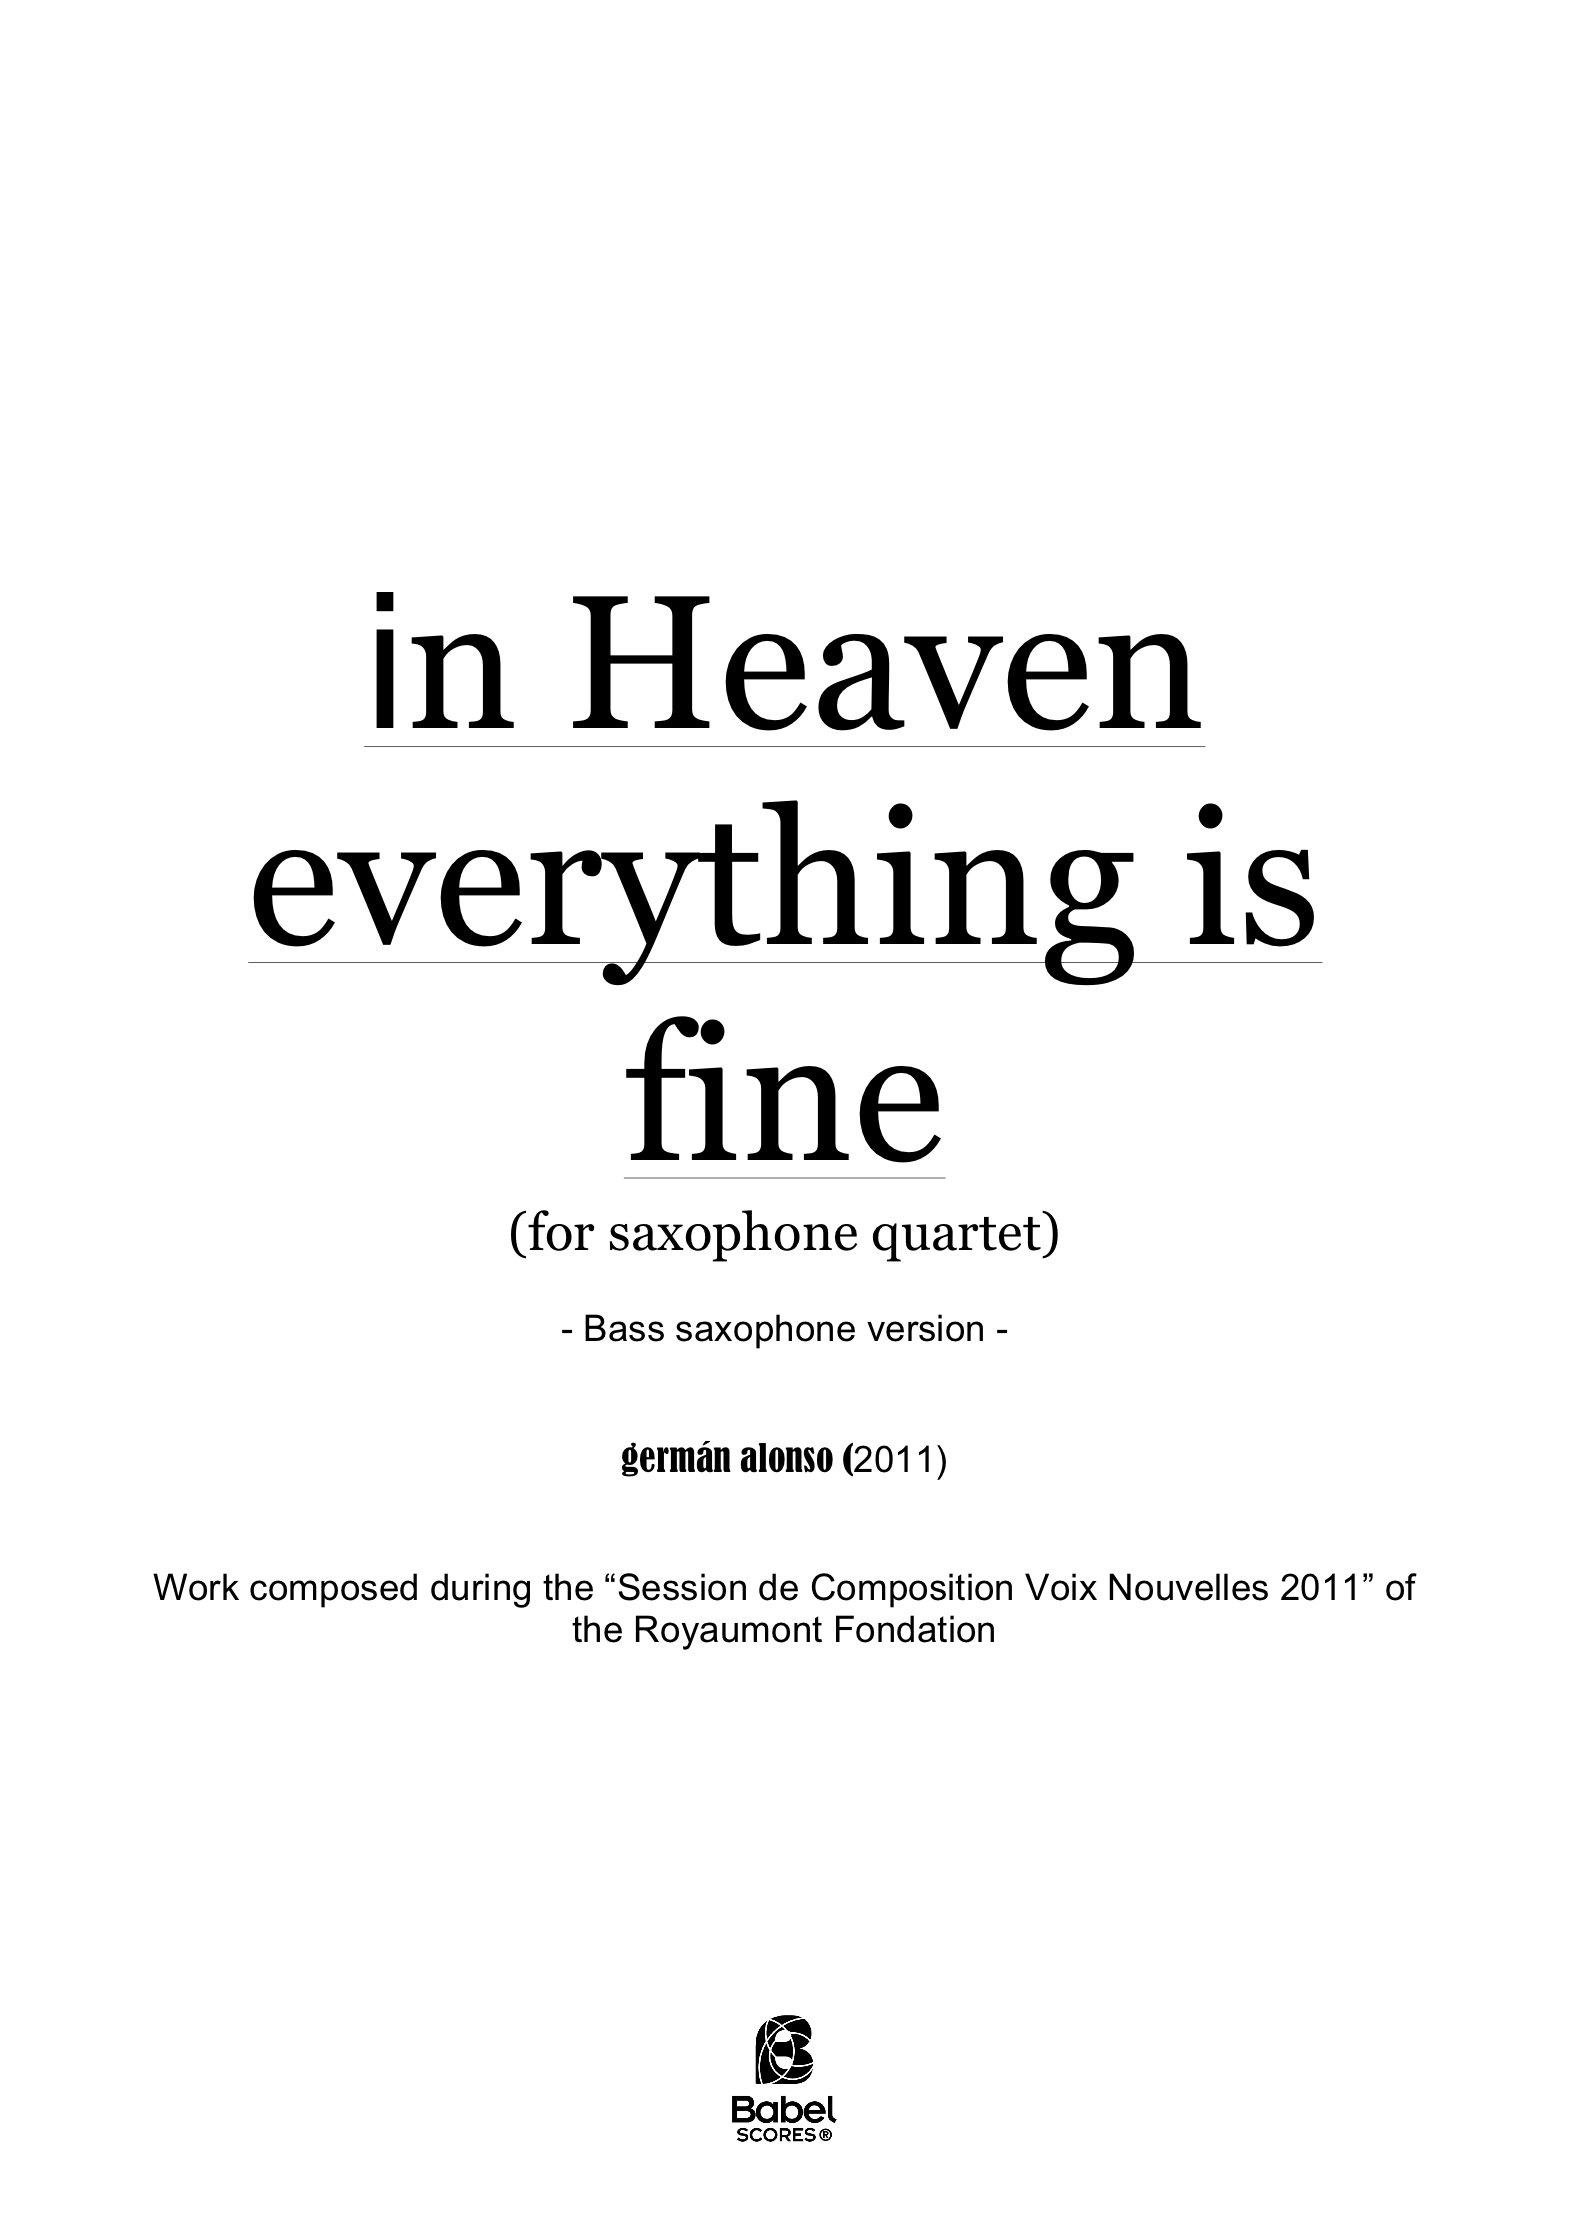 in heaven everything is fine A4 z